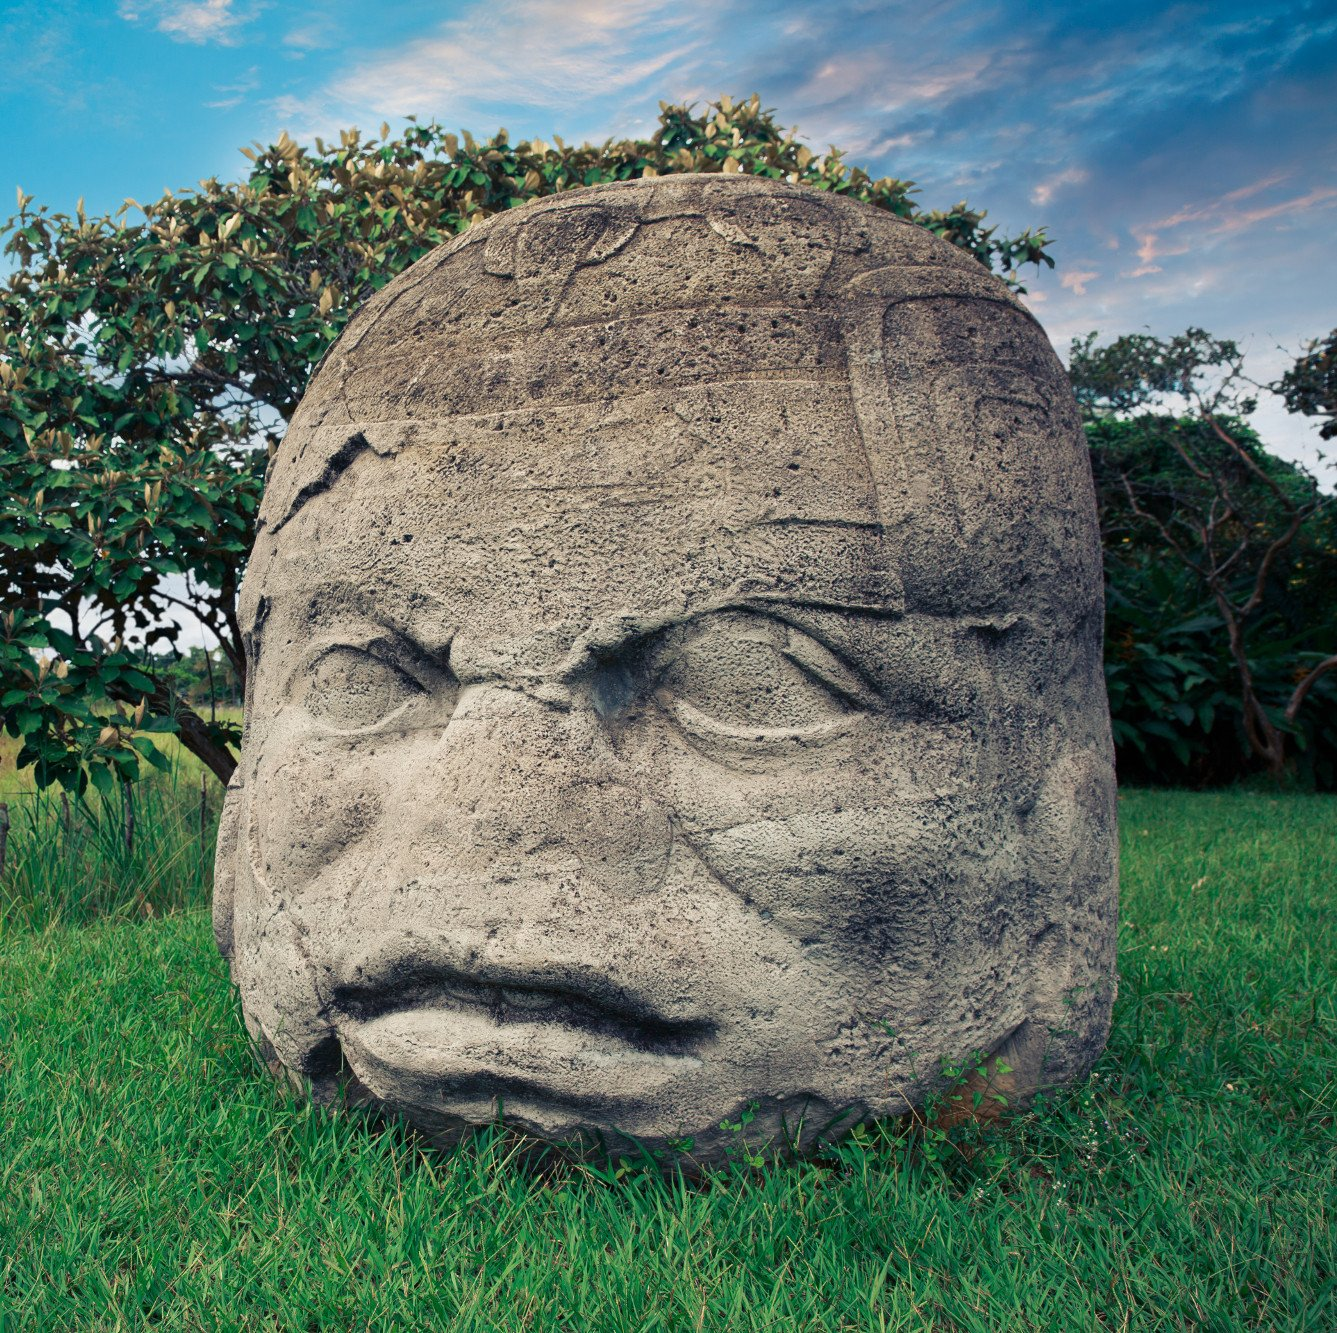 a history of the olmec civilization in mesoamerica The olmec, considered as the 'mother of culture' flourished in the southern region of mesoamerica olmec civilization was one of the first mesoamerican civilizations centred in the gulf of mexico which is present day states of veracruz and tabasco.